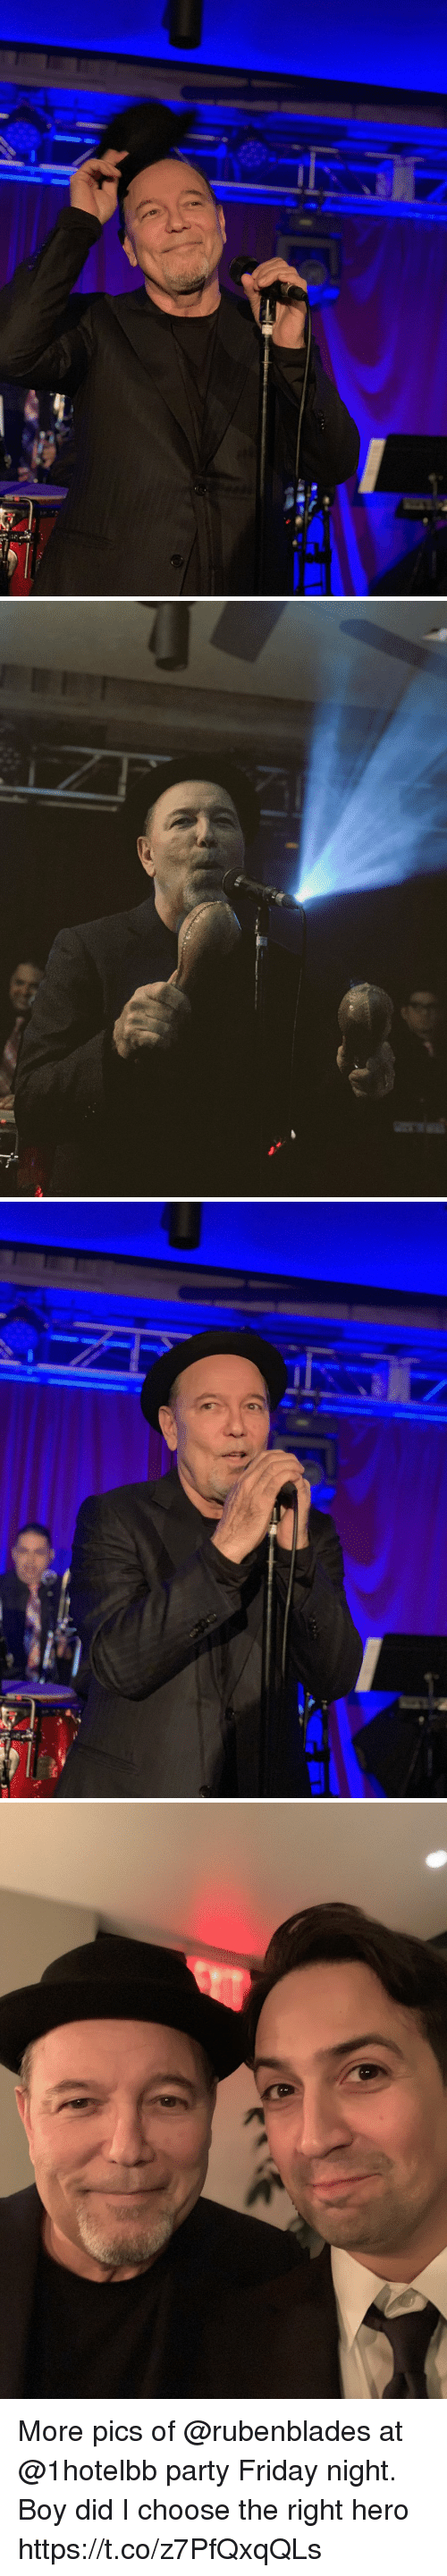 Friday, Memes, and Party: More pics of @rubenblades at @1hotelbb party Friday night. Boy did I choose the right hero https://t.co/z7PfQxqQLs